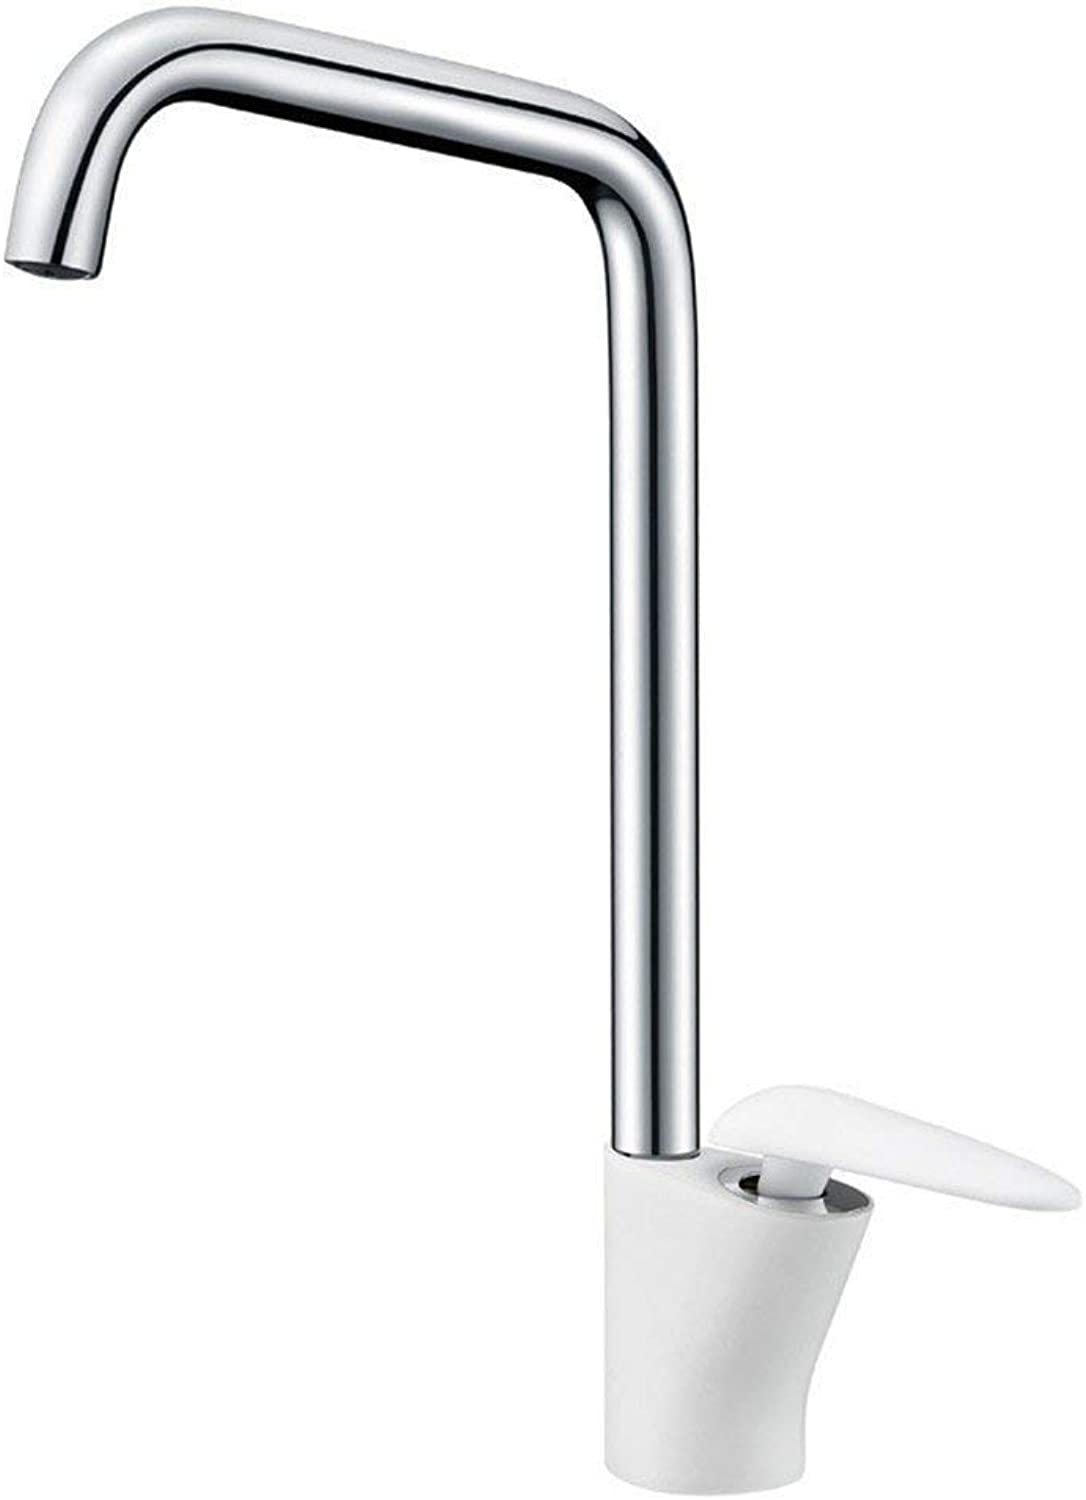 360° redating Faucet Retro Faucetkitchen Faucet 360 Degrees Hotel Household Handle Hot and Cold Sink Bathroom Faucet